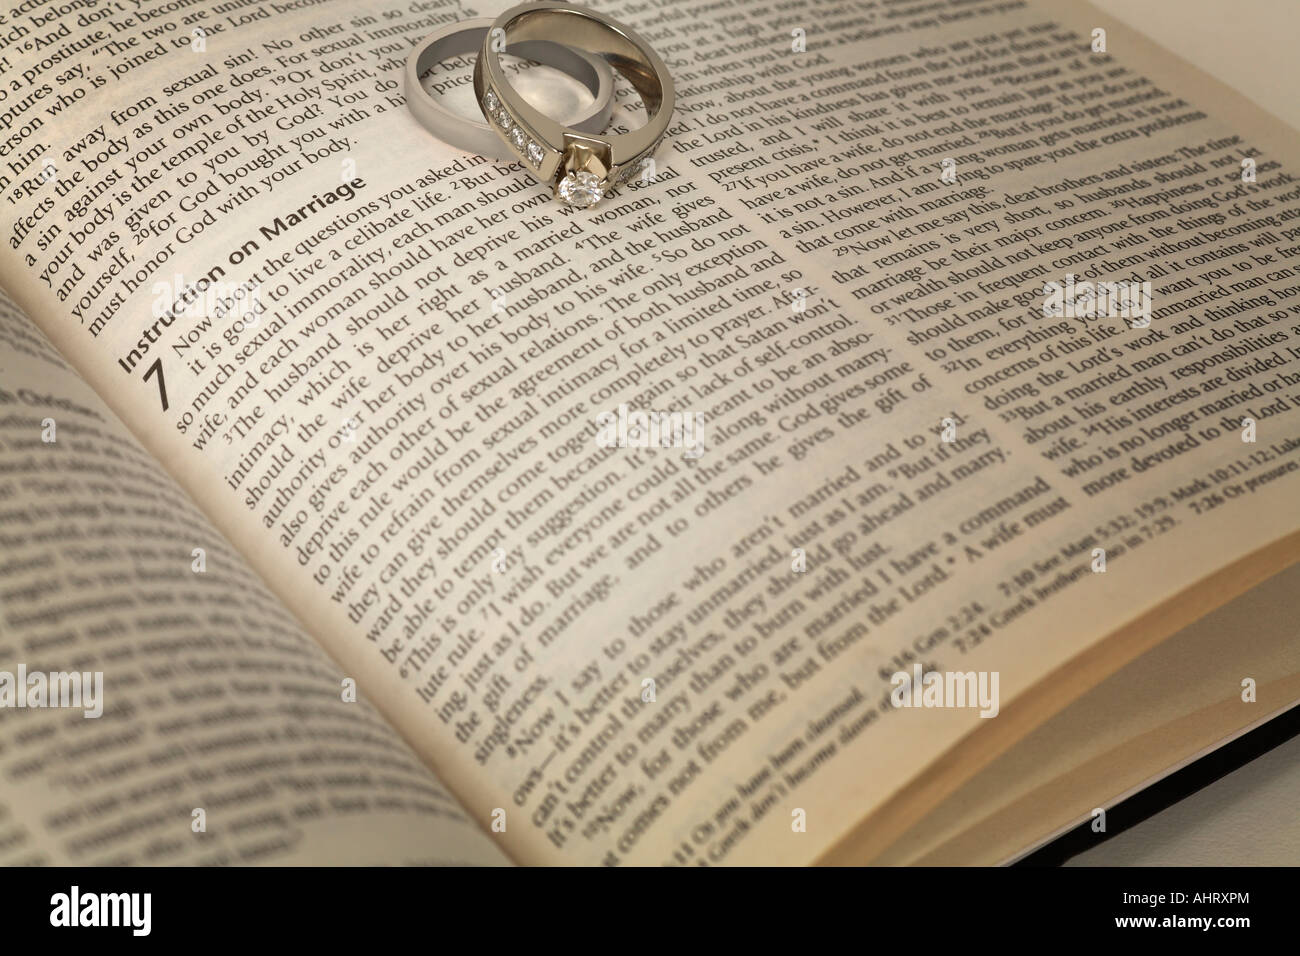 over photo stock online ring scripture heart rings shaped wedding bible shadow a and celebration